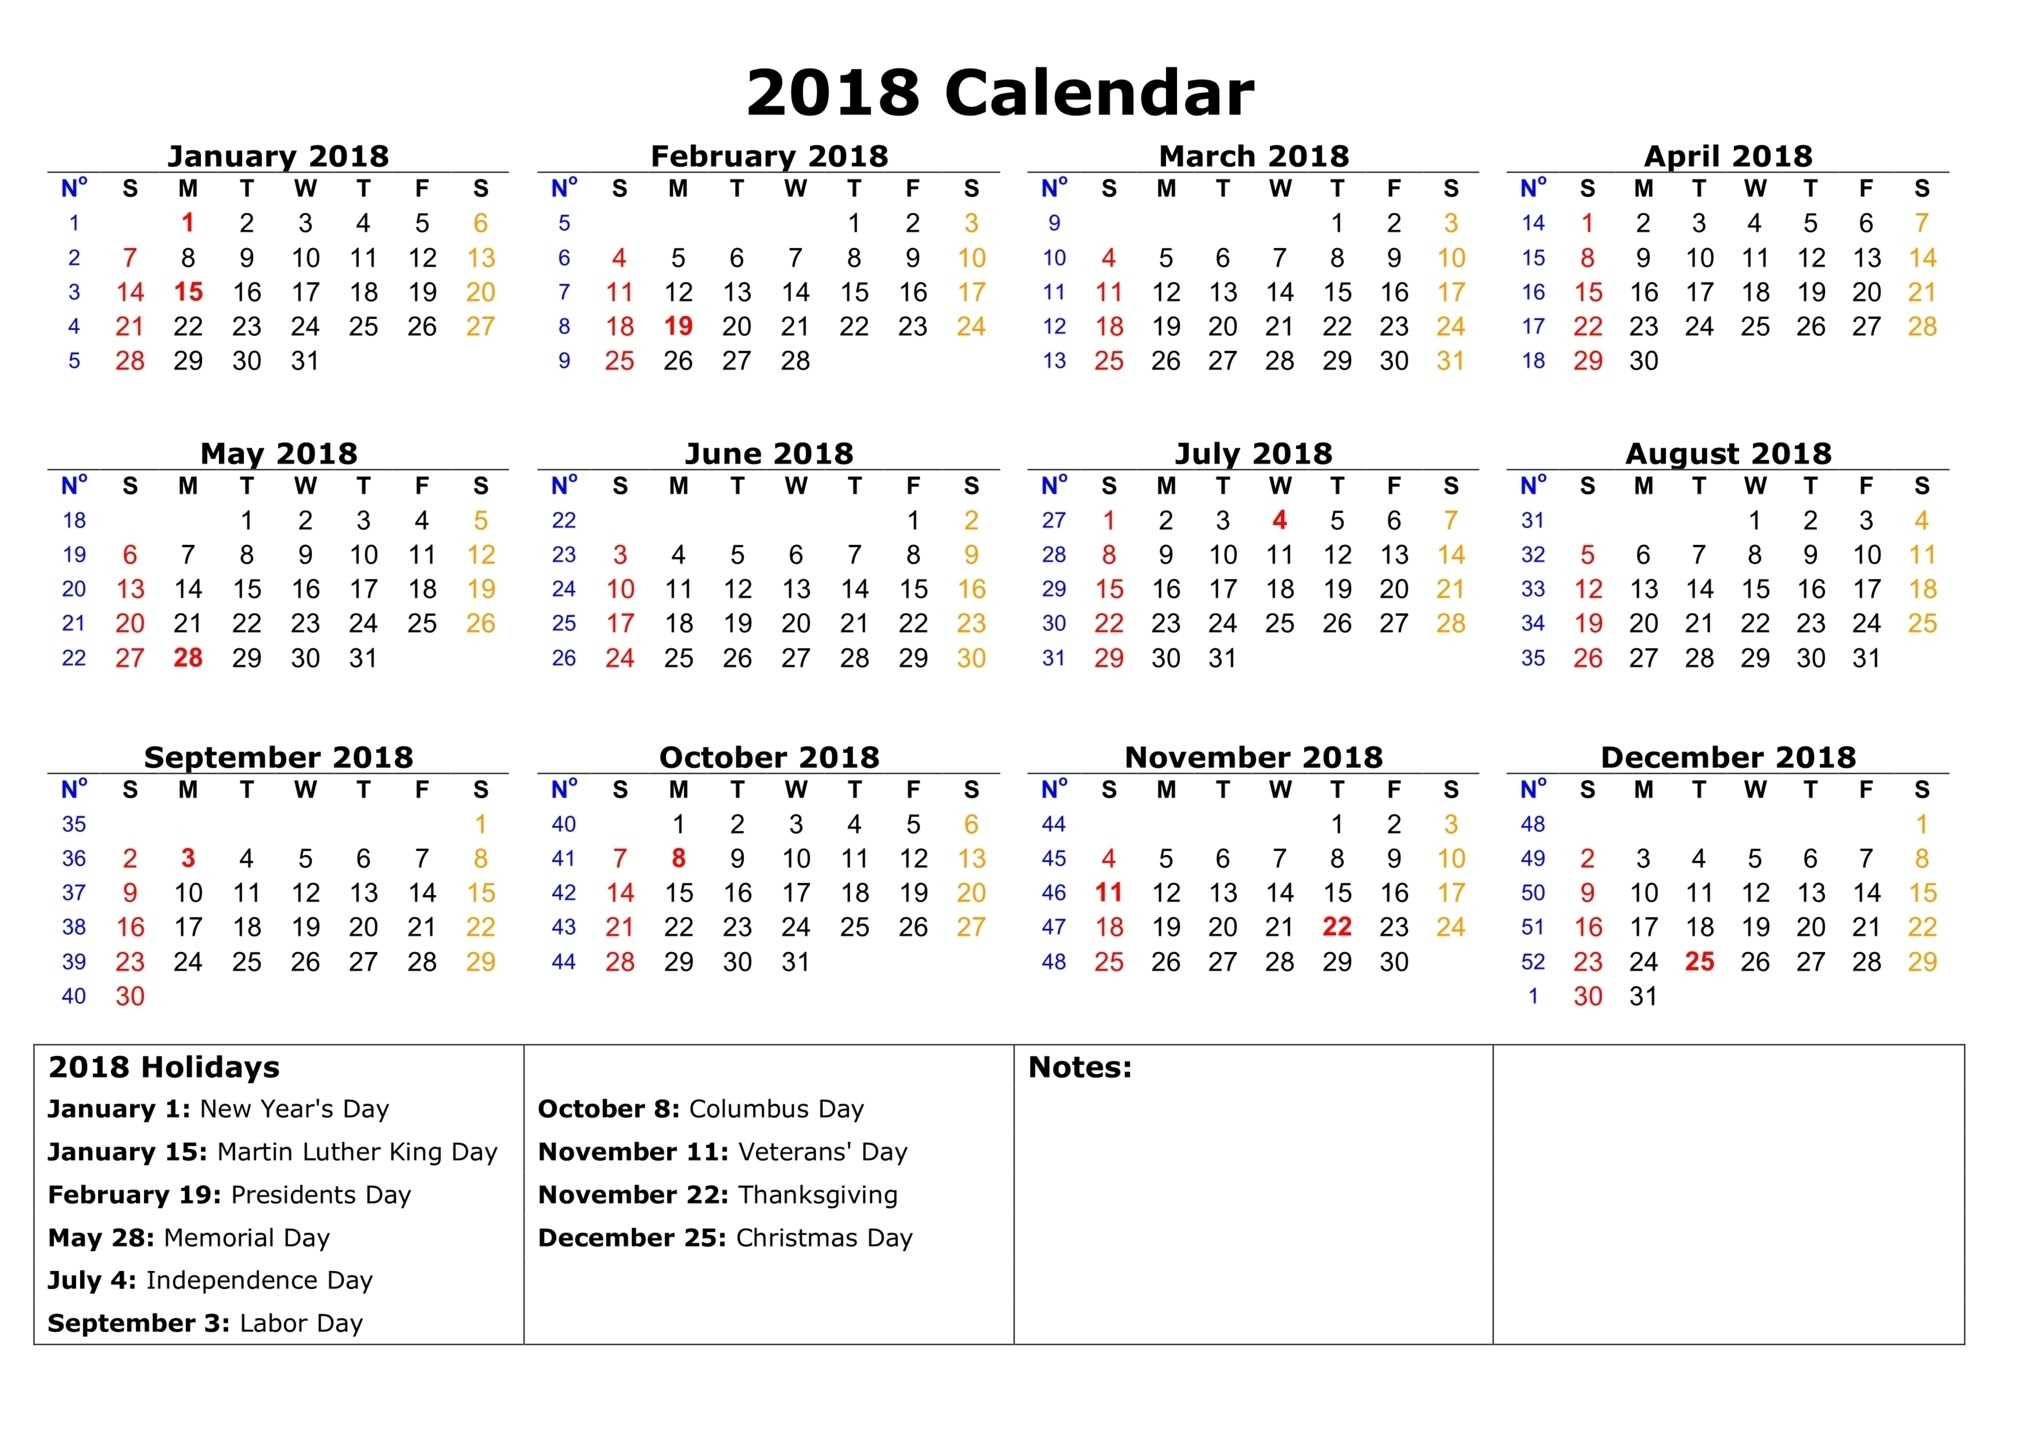 2018 federal holidays usa uk national  Government Calendar With Holidays 2018 erdferdf